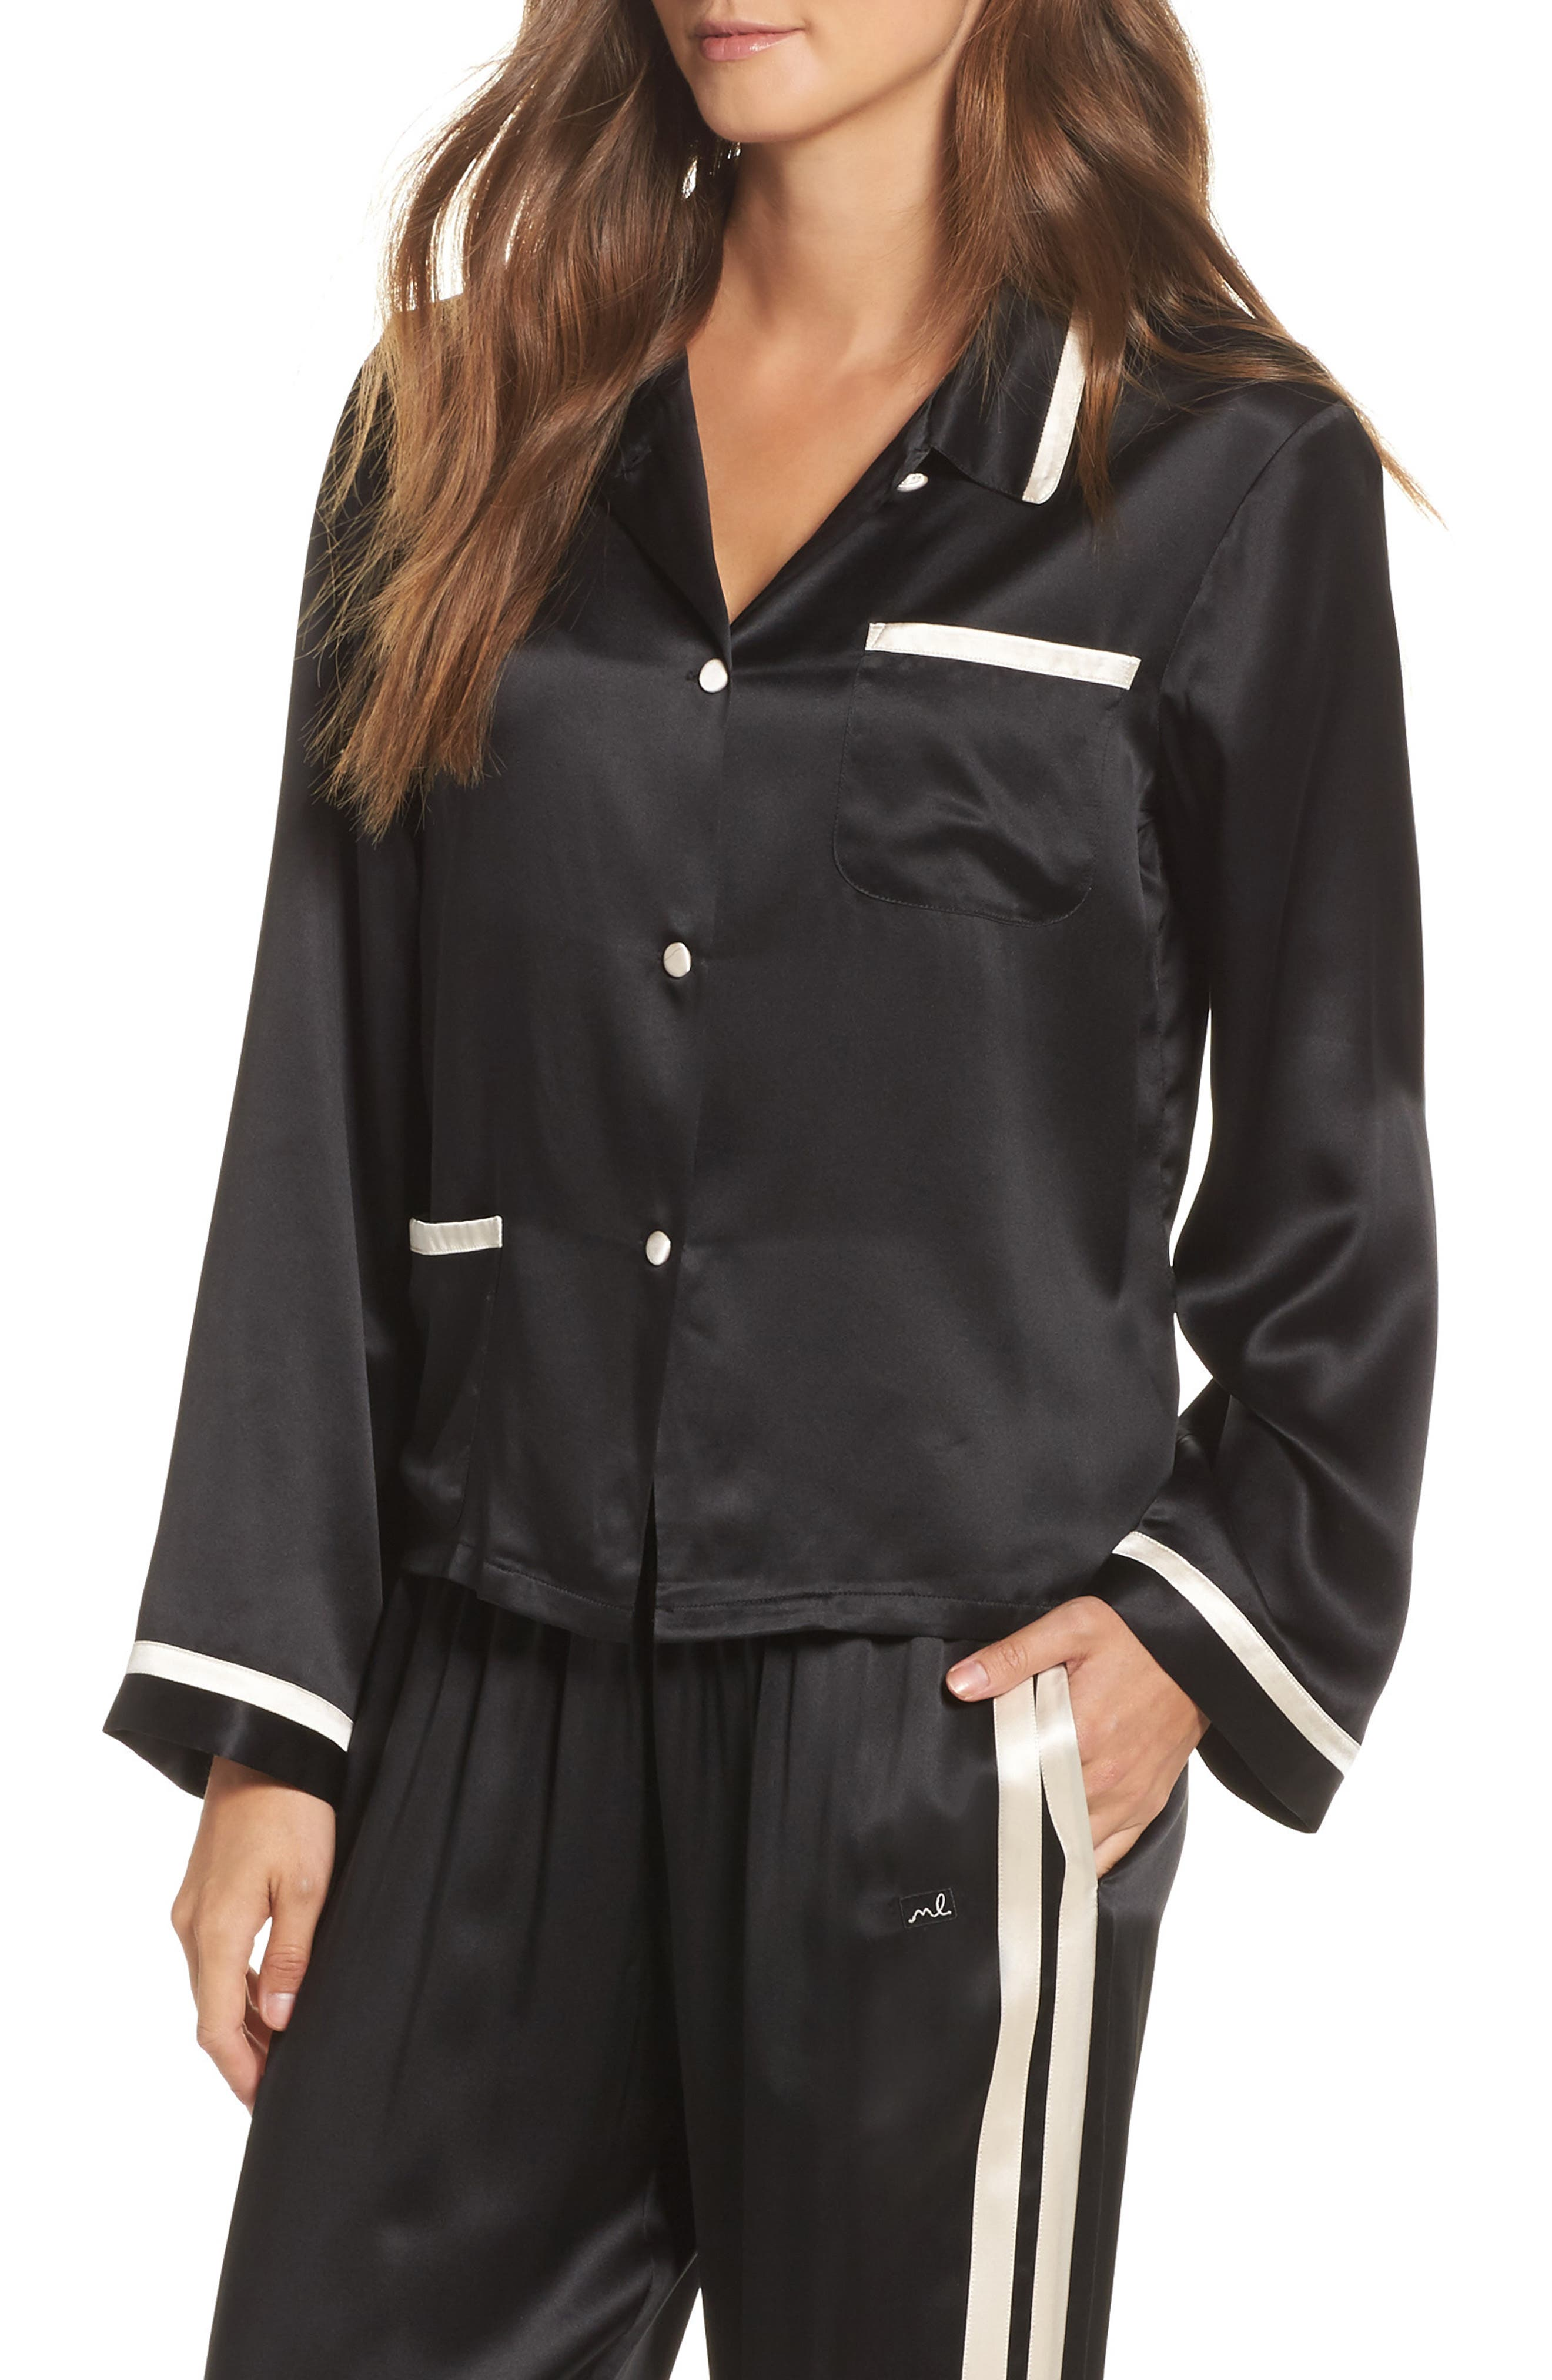 Ruthie Silk Charmeuse Pajama Top,                         Main,                         color, Noir/ Vanilla